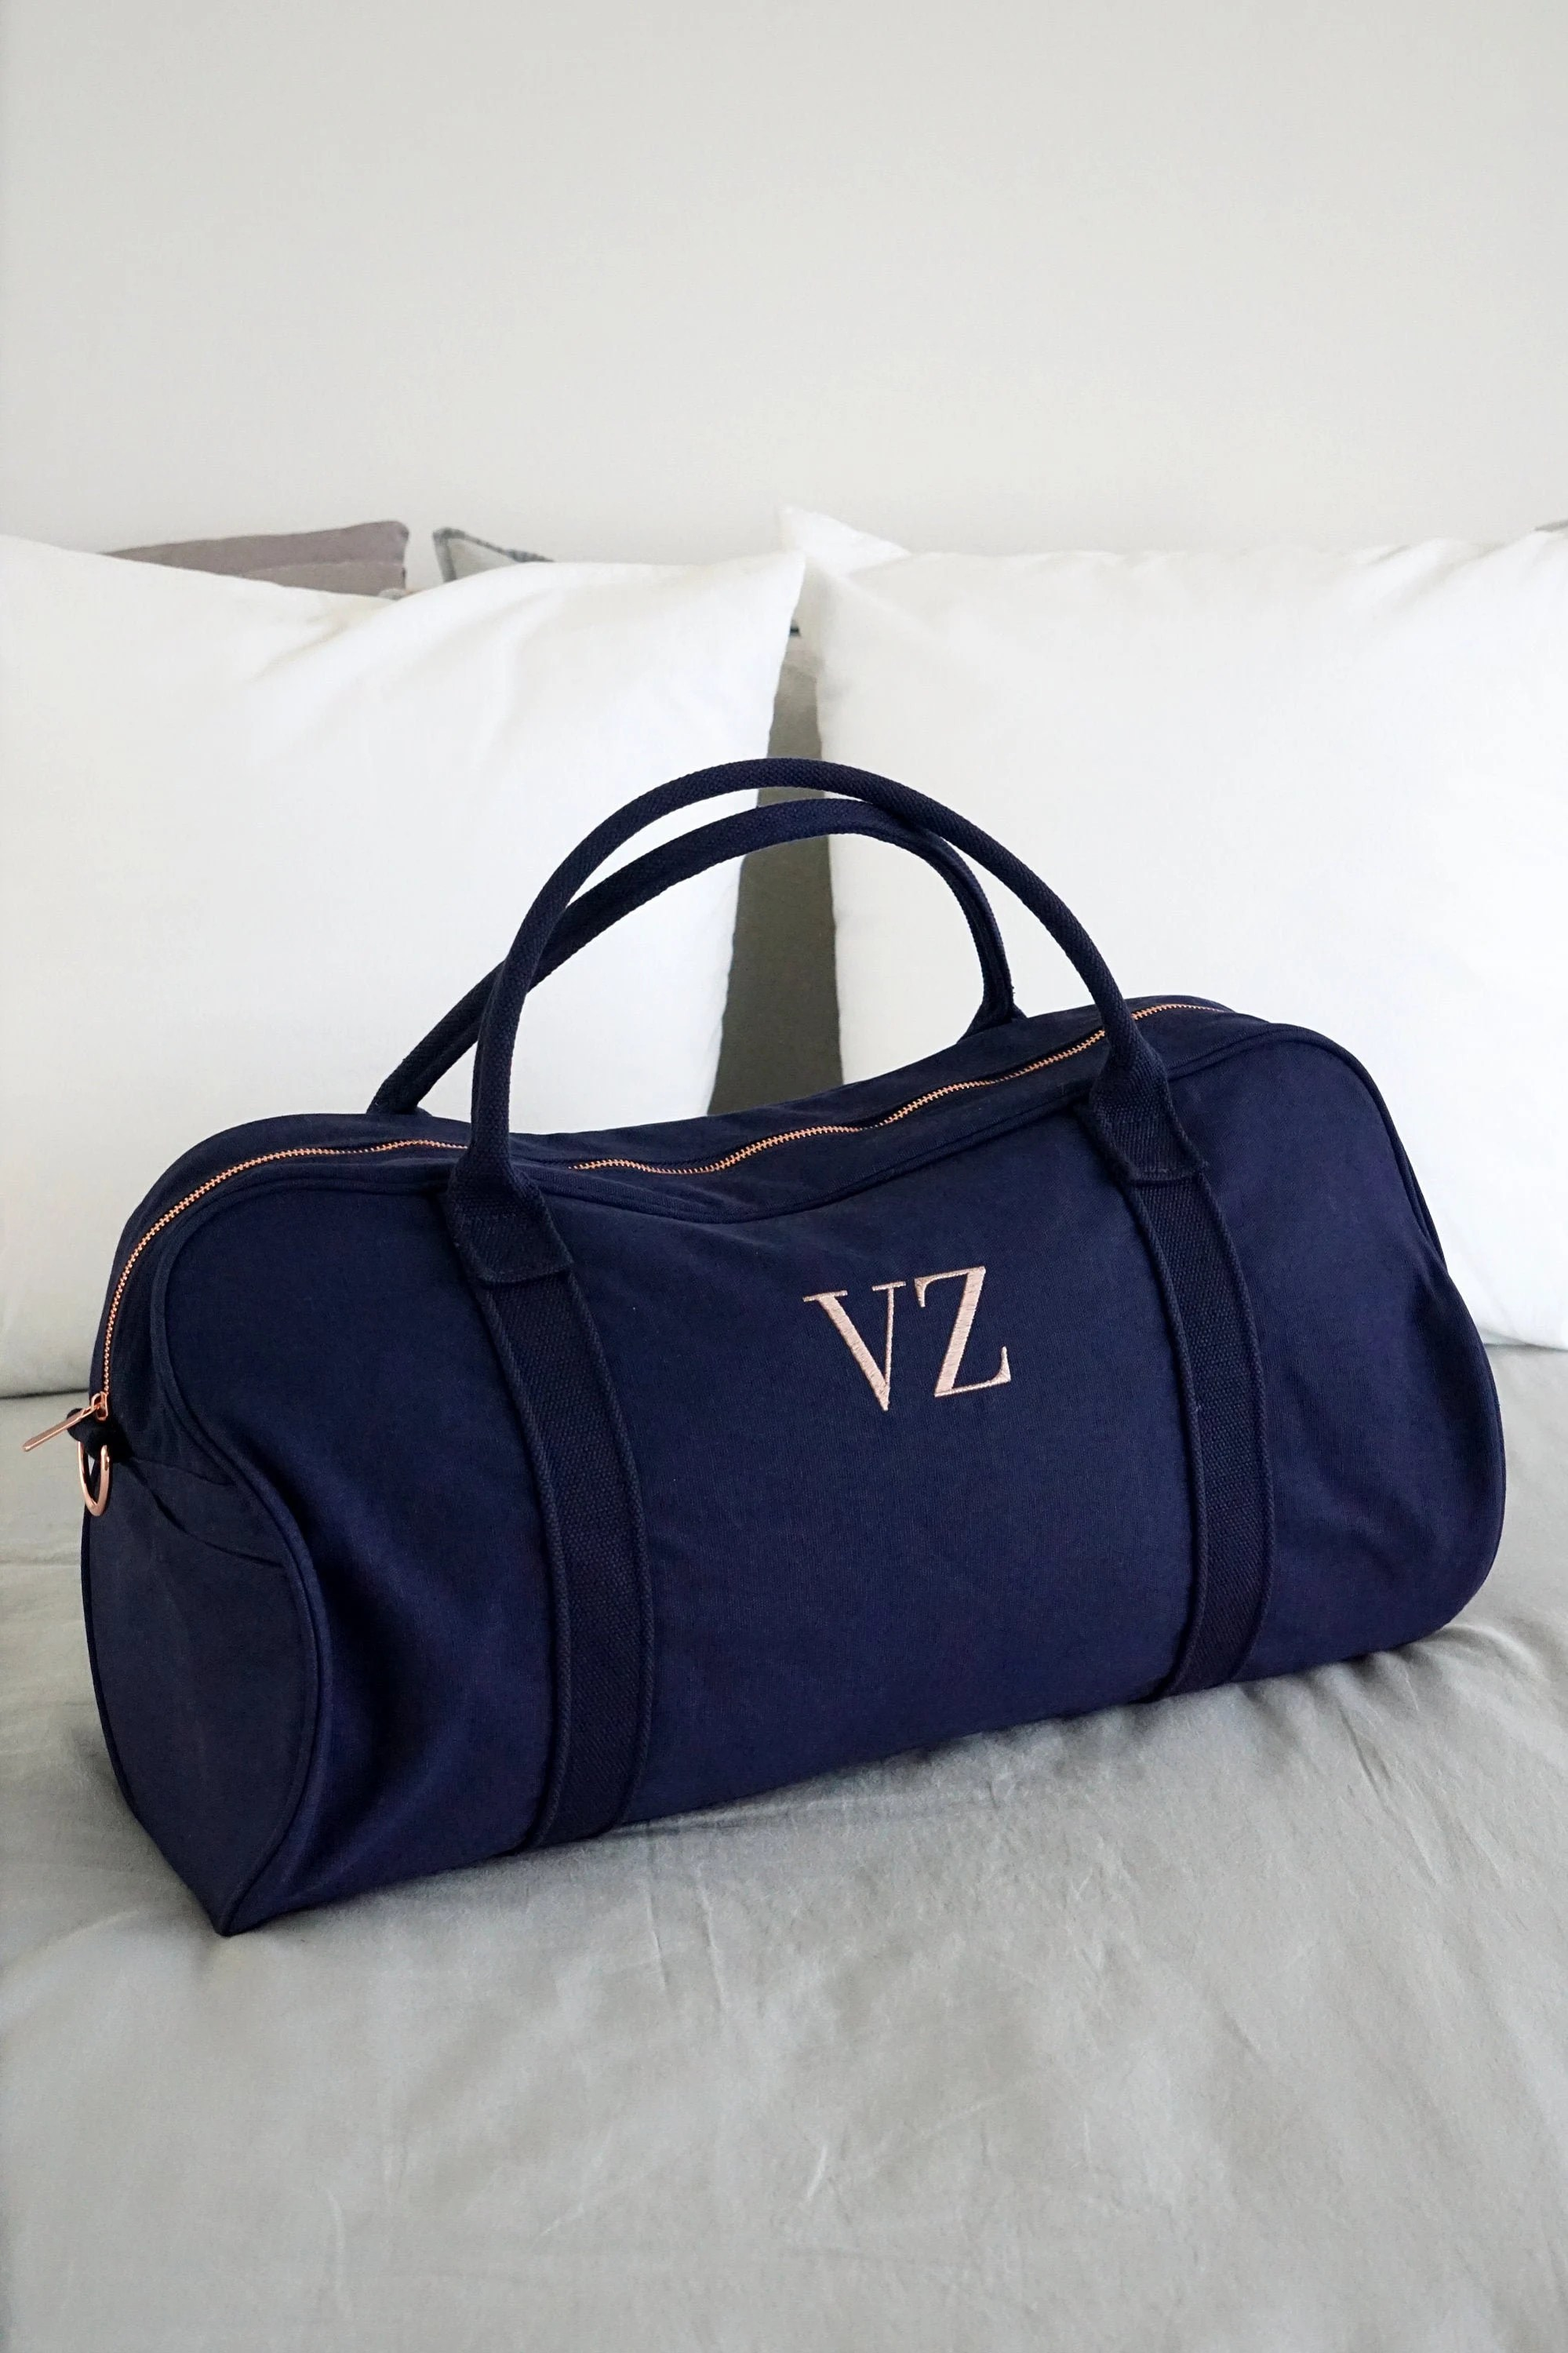 Personalised Bag //Duffle Bag //Bridesmaid Gifts //Monogrammed Navy-PREORDER 30APR